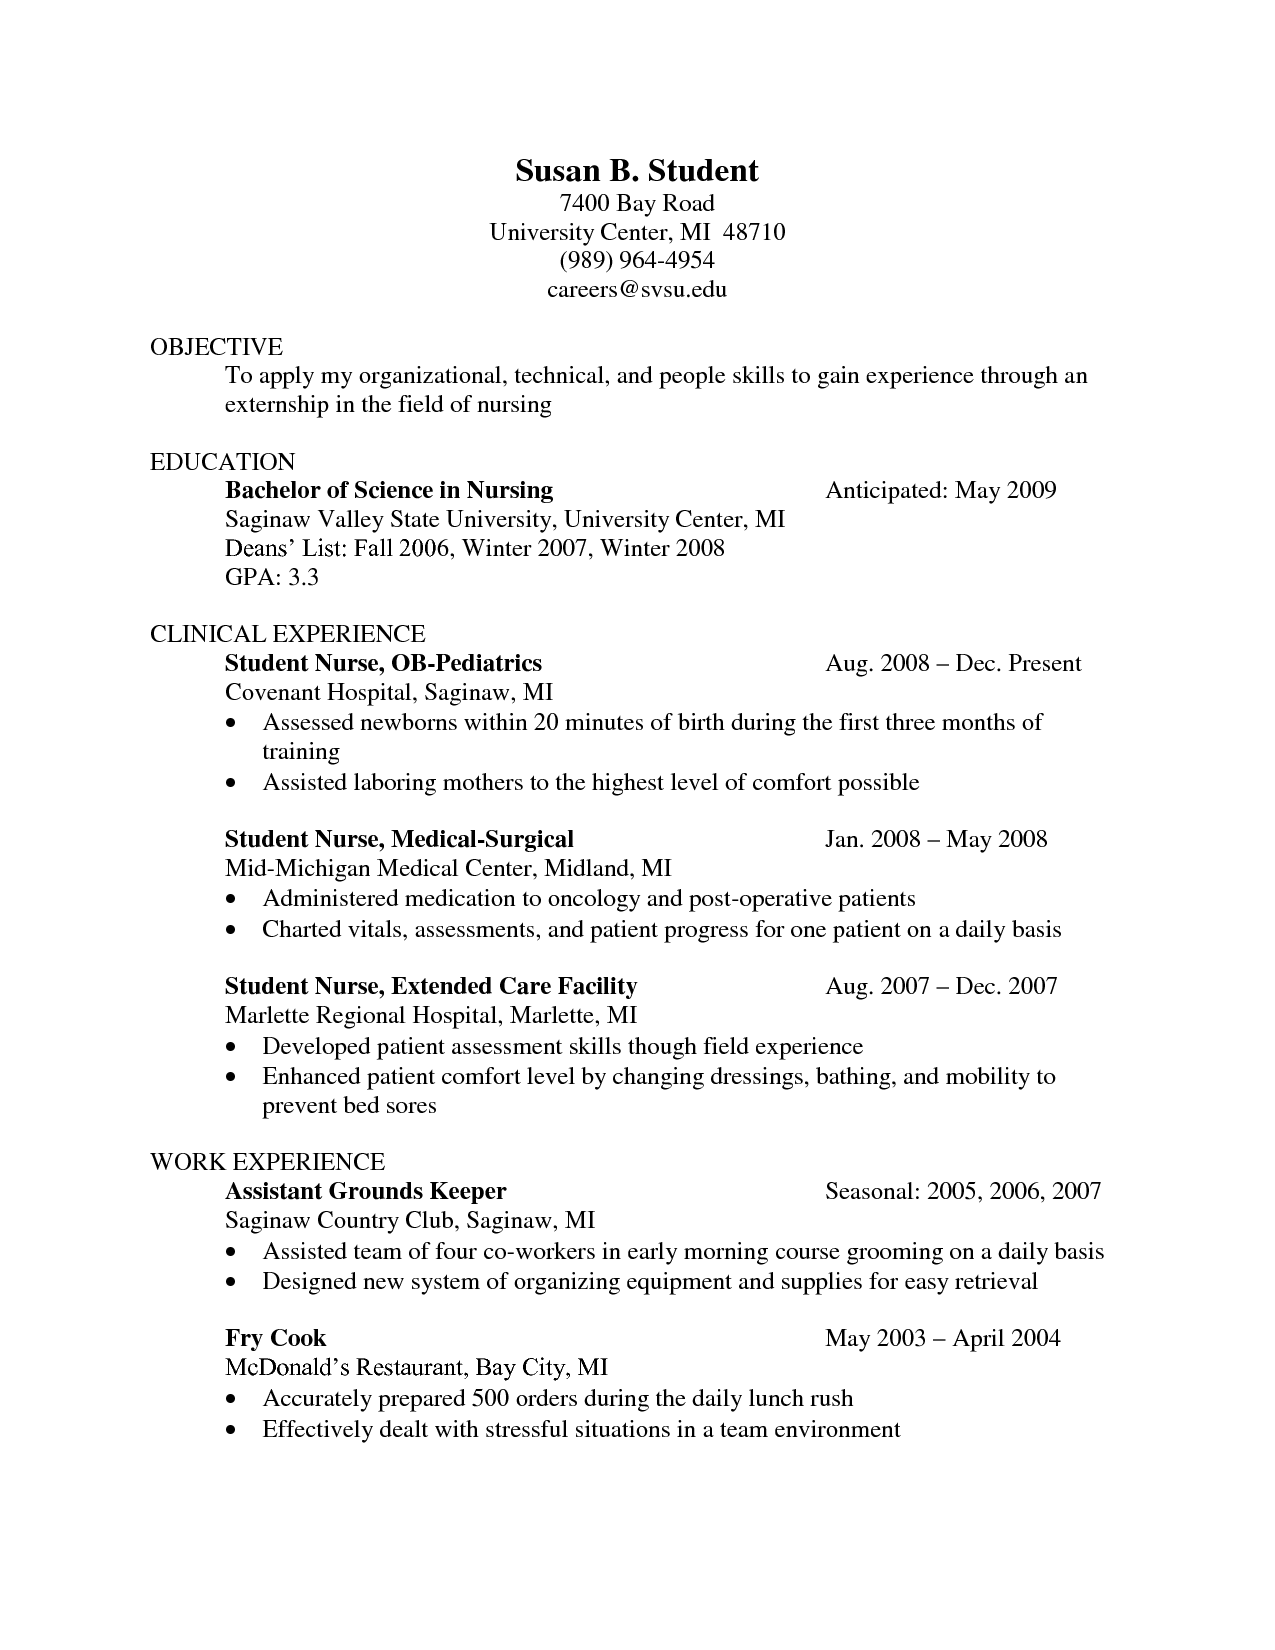 Oncology Nurse Resume Templates Httpwwwresumecareerinfo - Free rush resume template